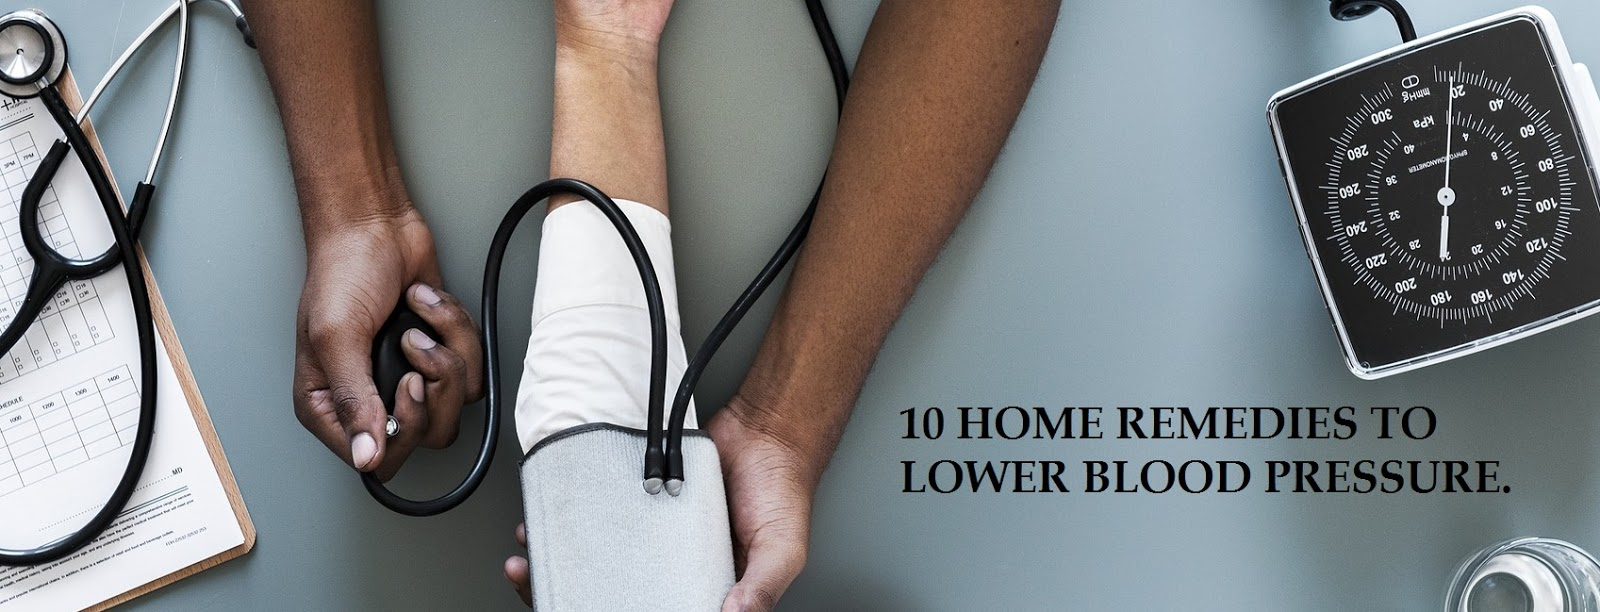 Home Remedies To Lower High Blood Pressure Healthytip In